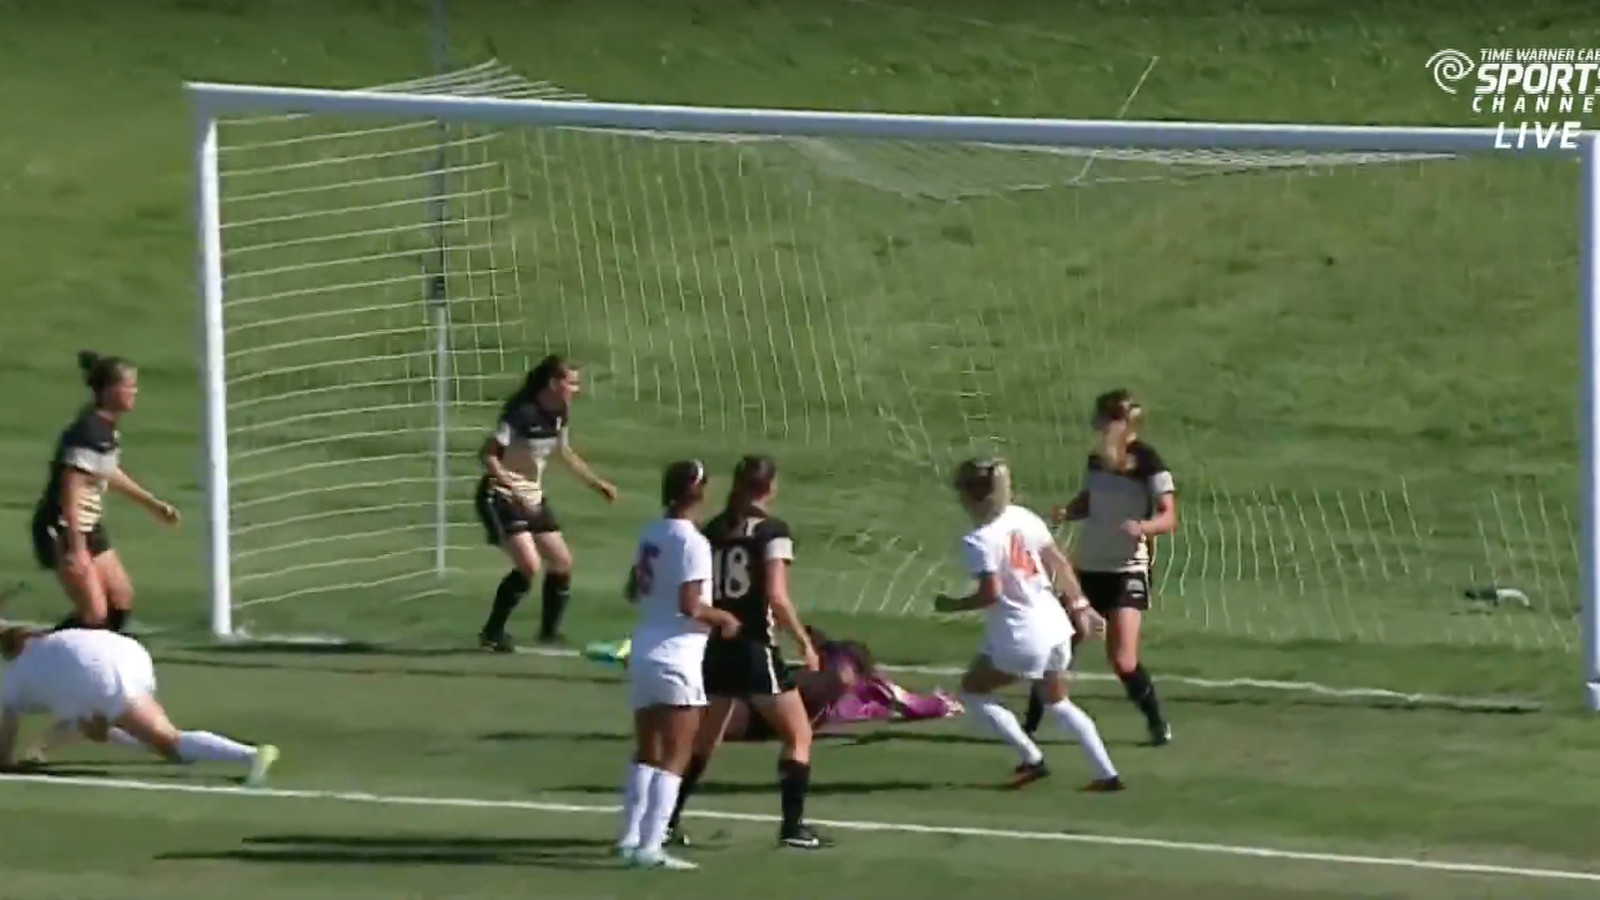 Syracuse amateur womens soccer